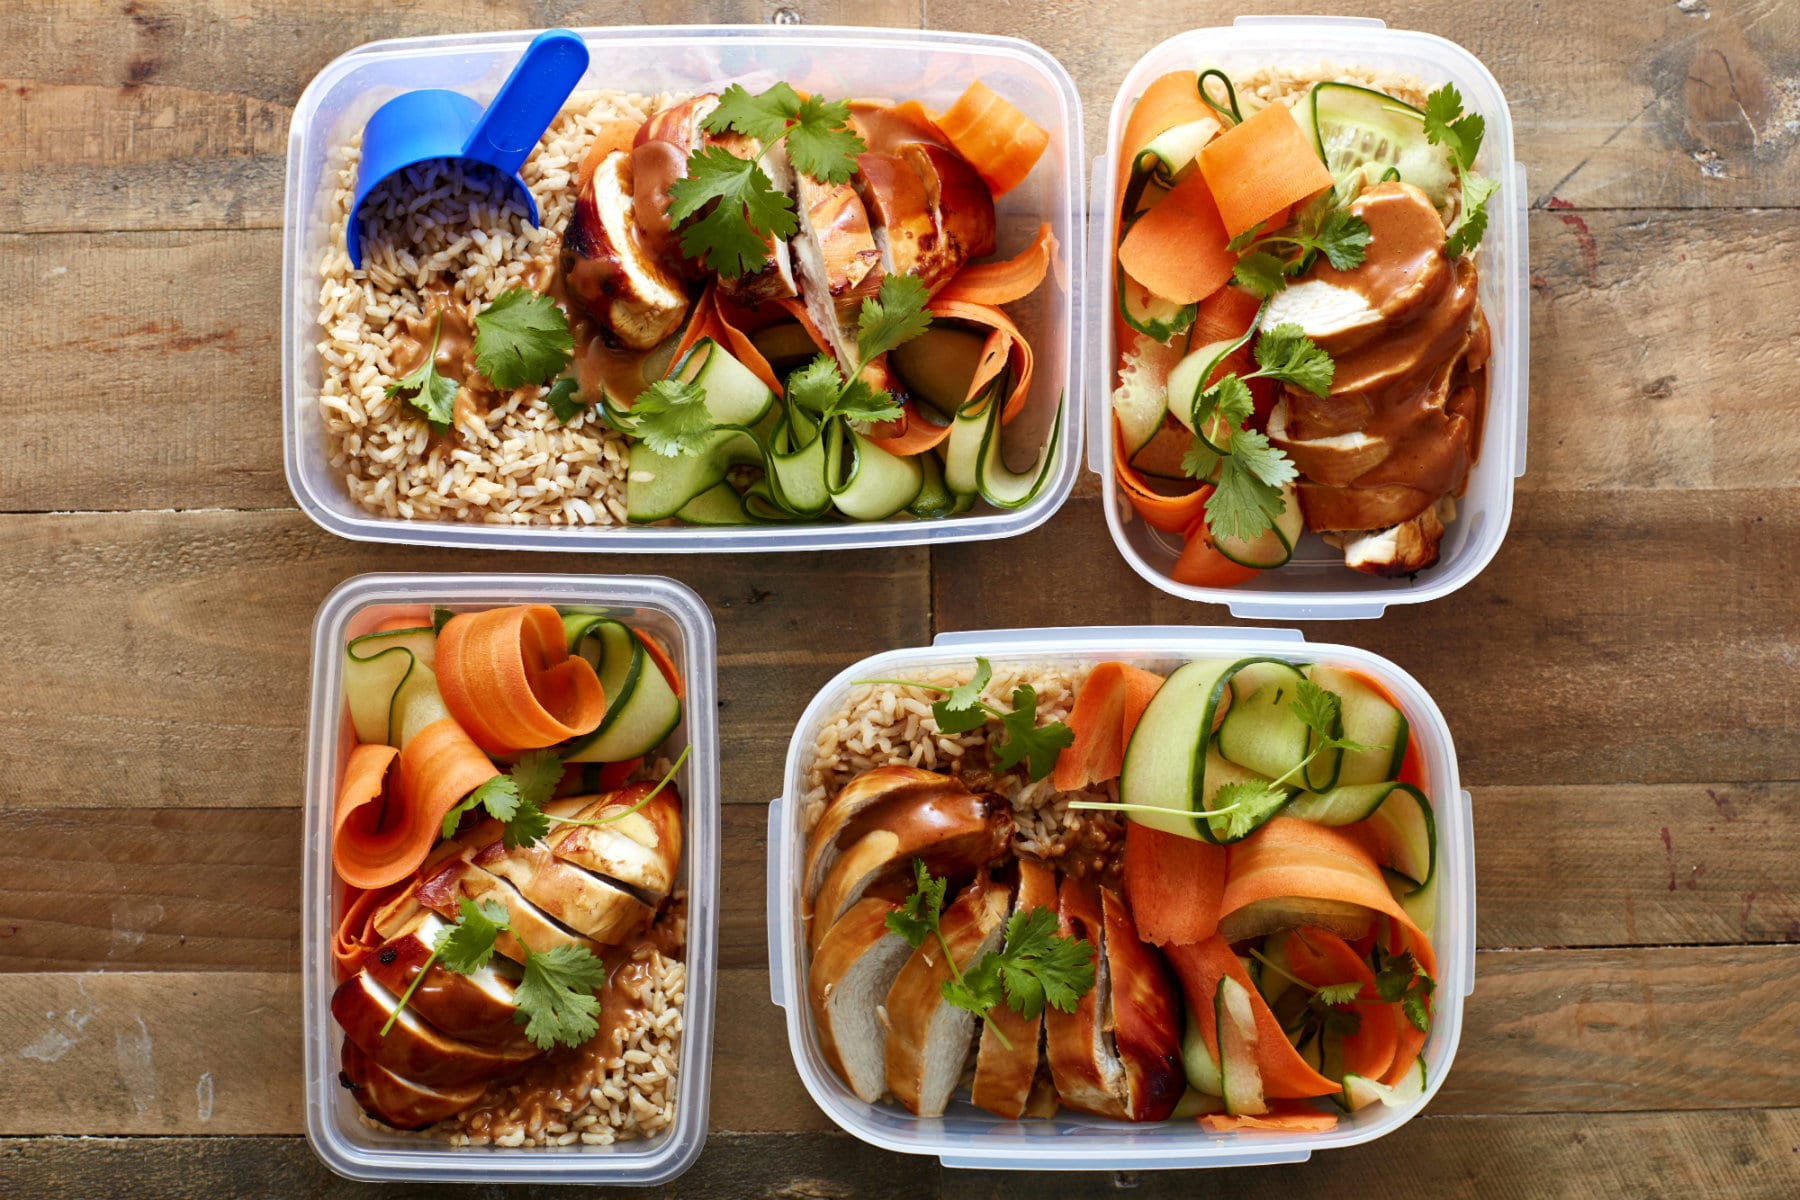 Easy Meal Prep Idea | Asian Peanut Butter Sesame Chicken